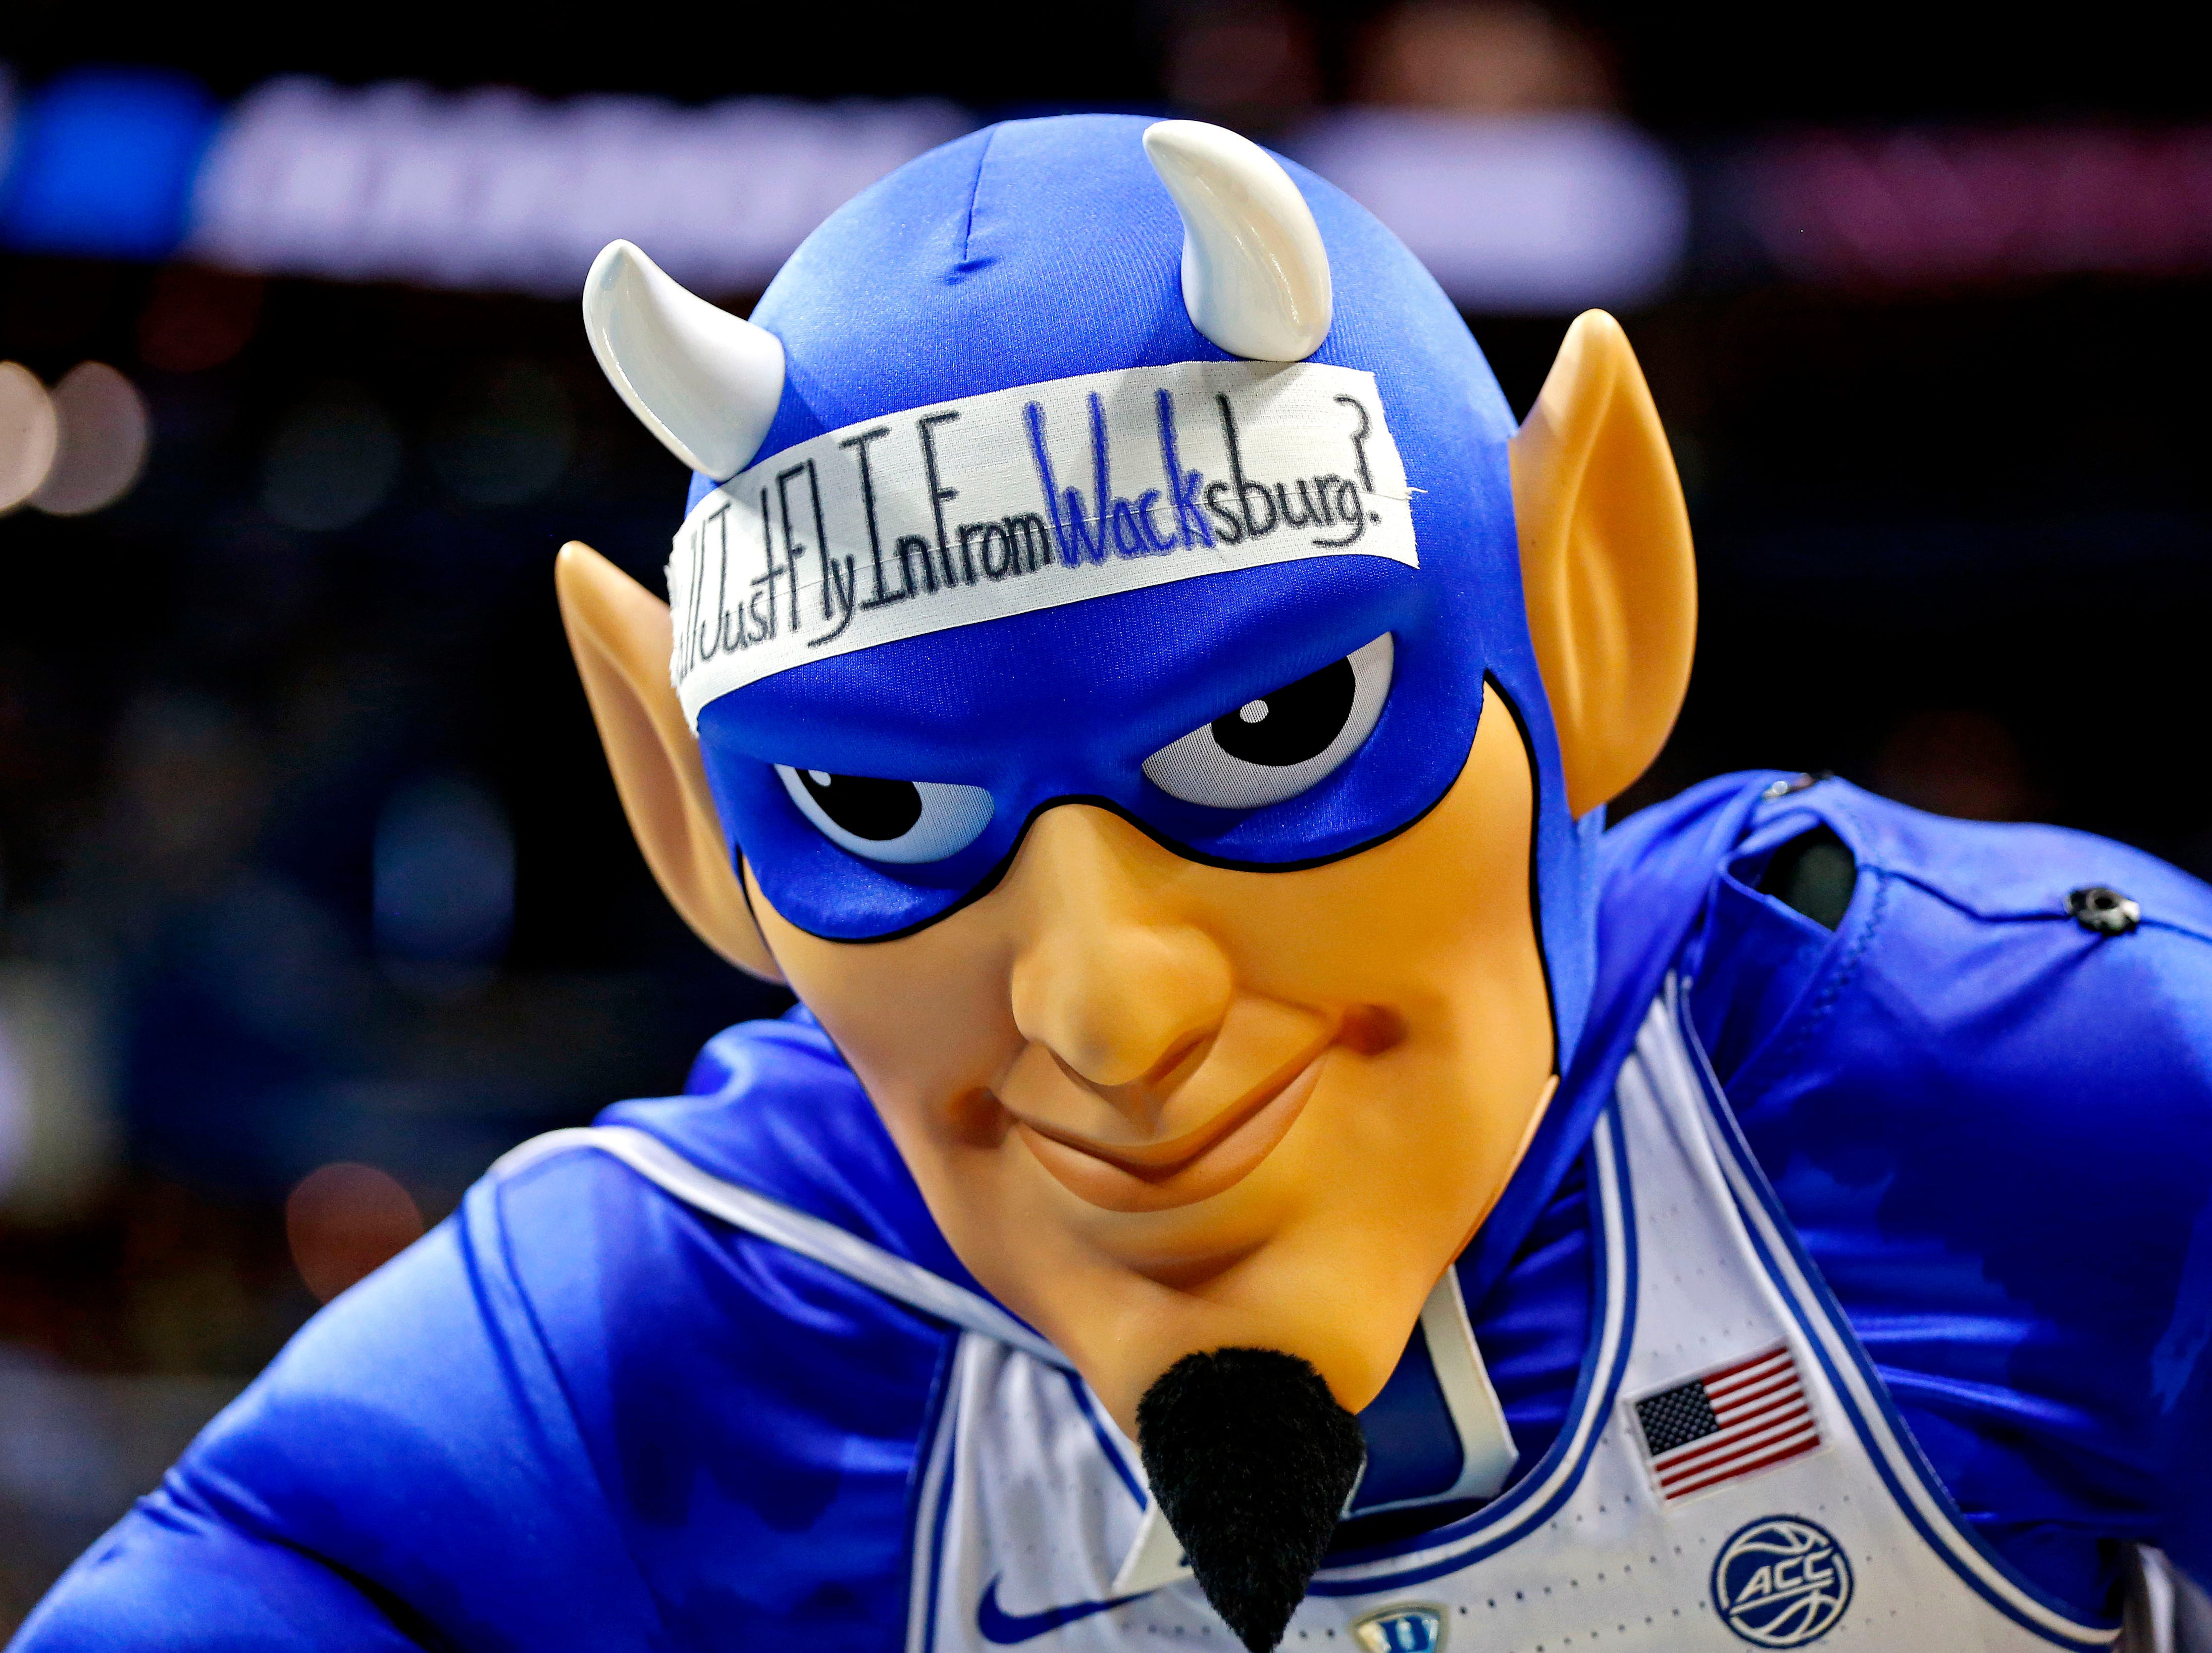 The Duke Blue Devils mascot during the first half against the Virginia Tech Hokies in the Sweet 16.